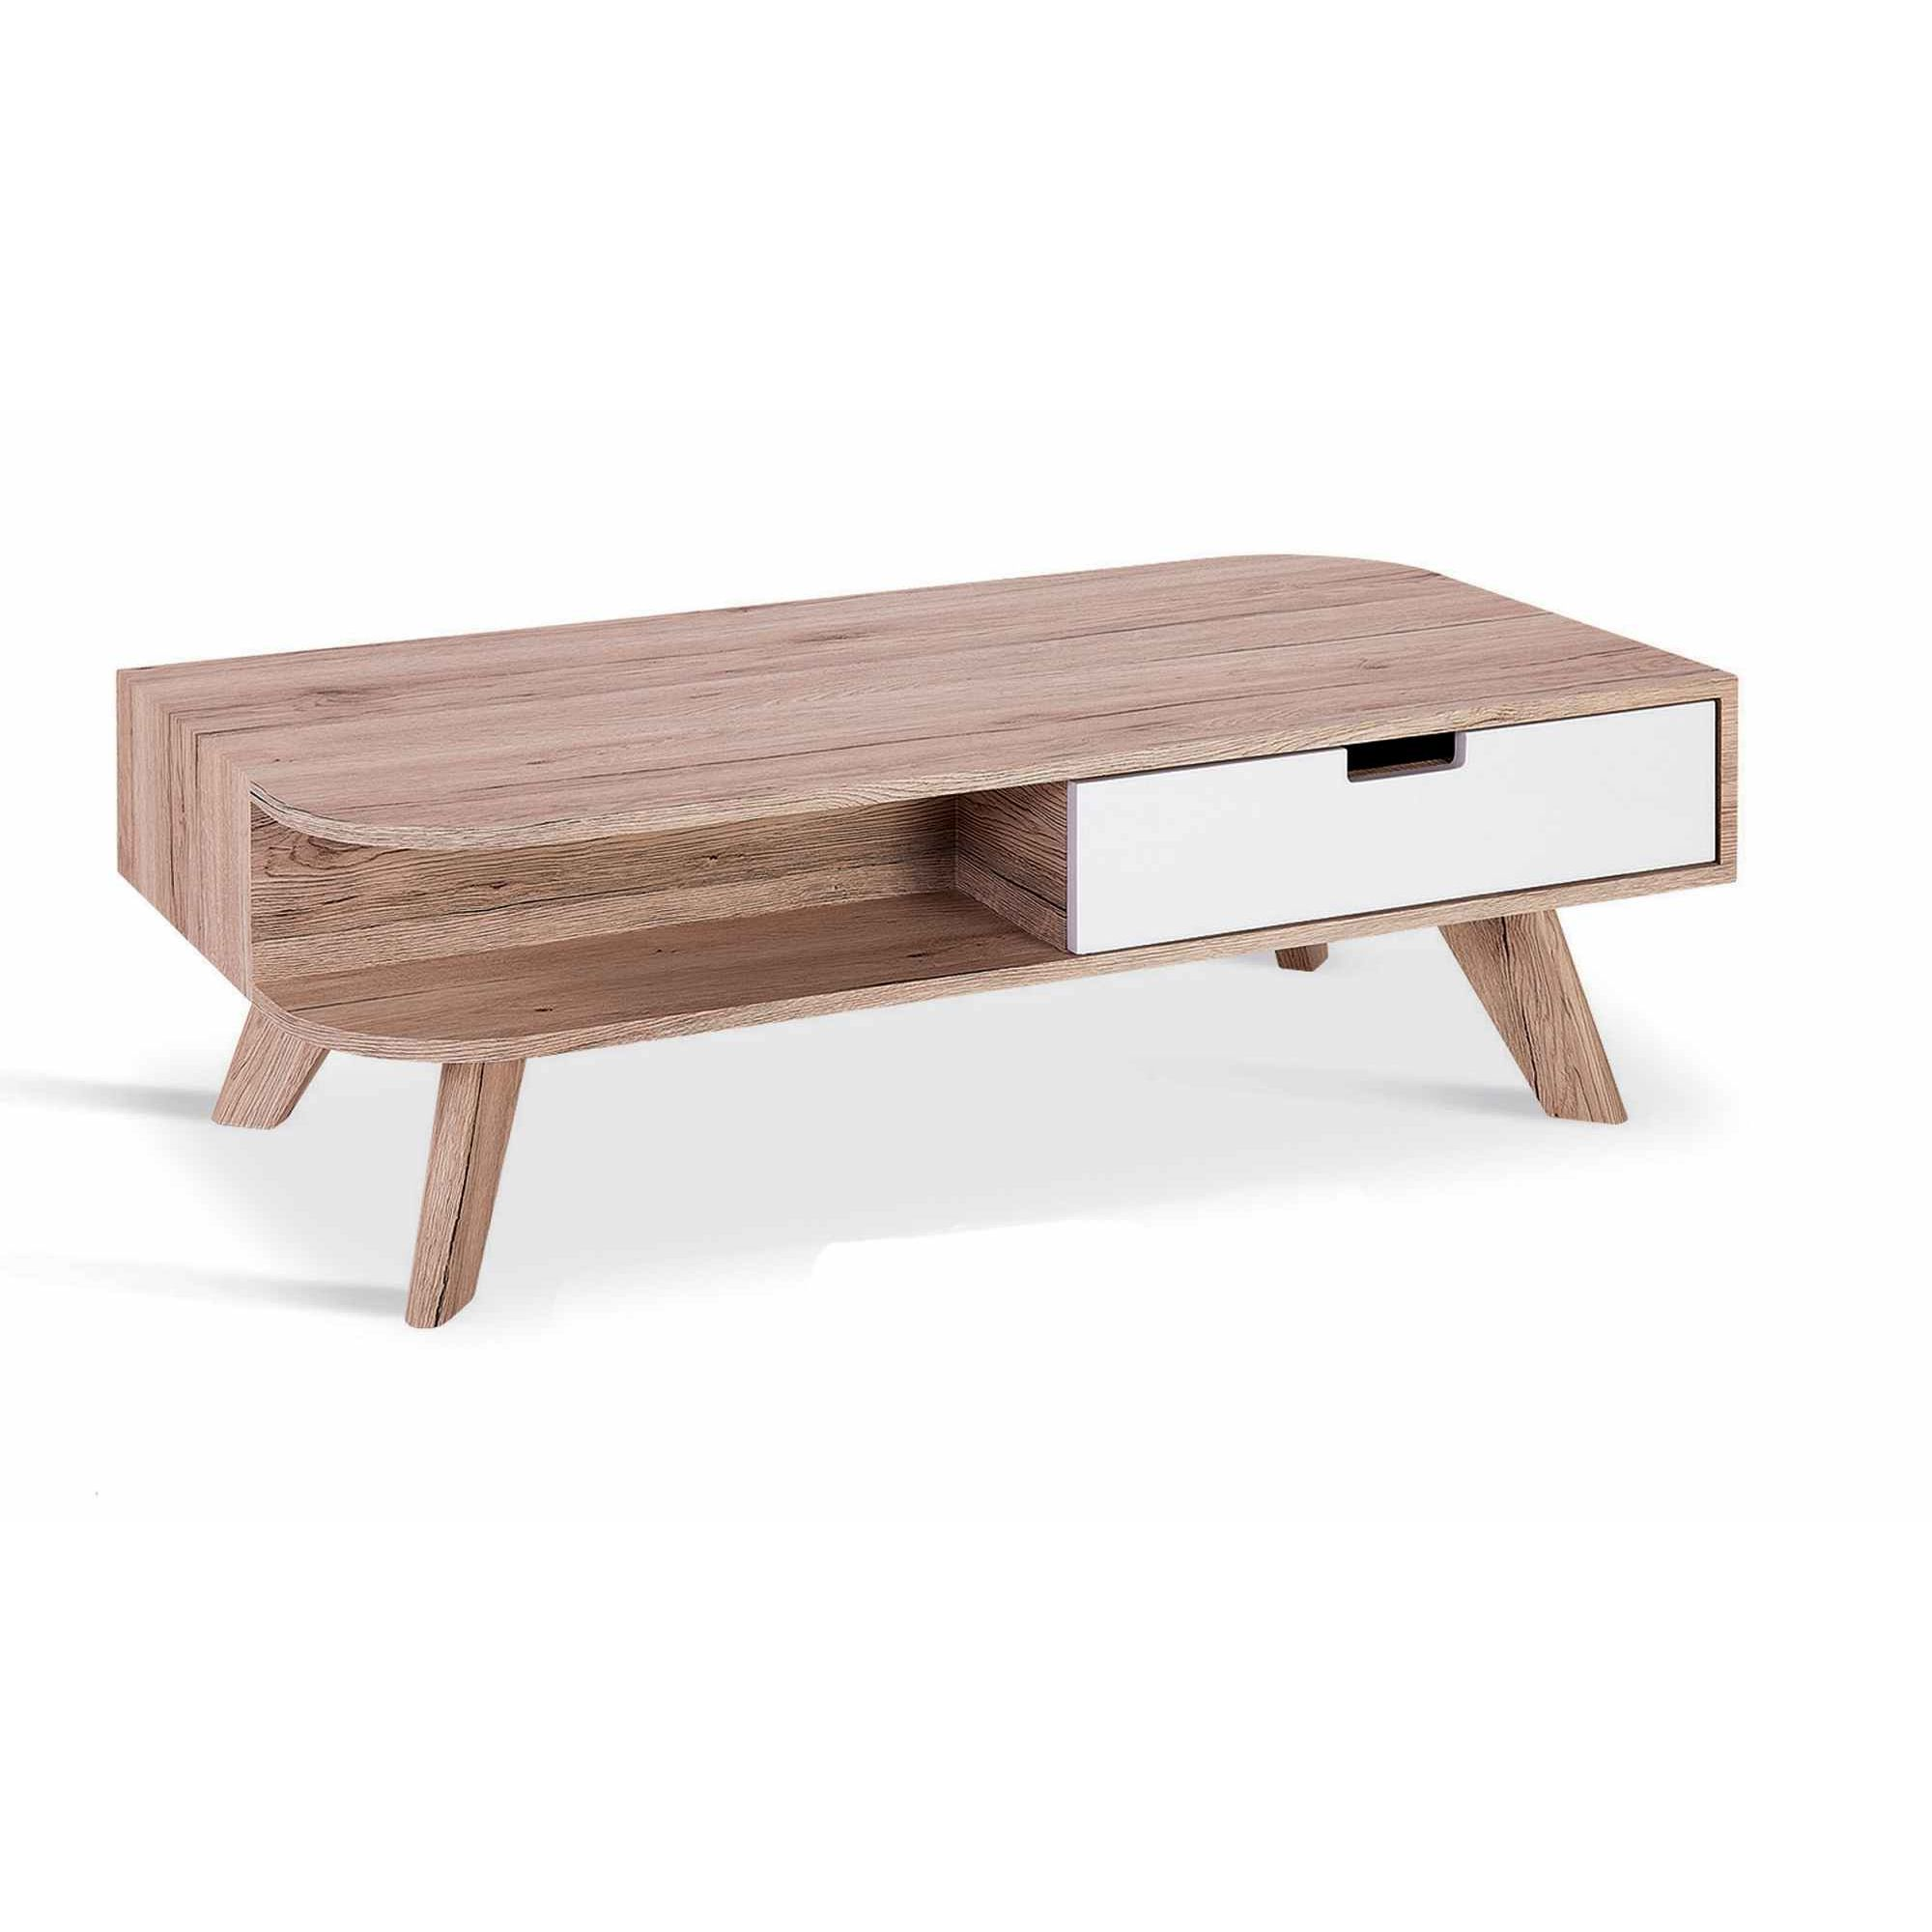 Table basse scandinave en bois - Table bois scandinave ...